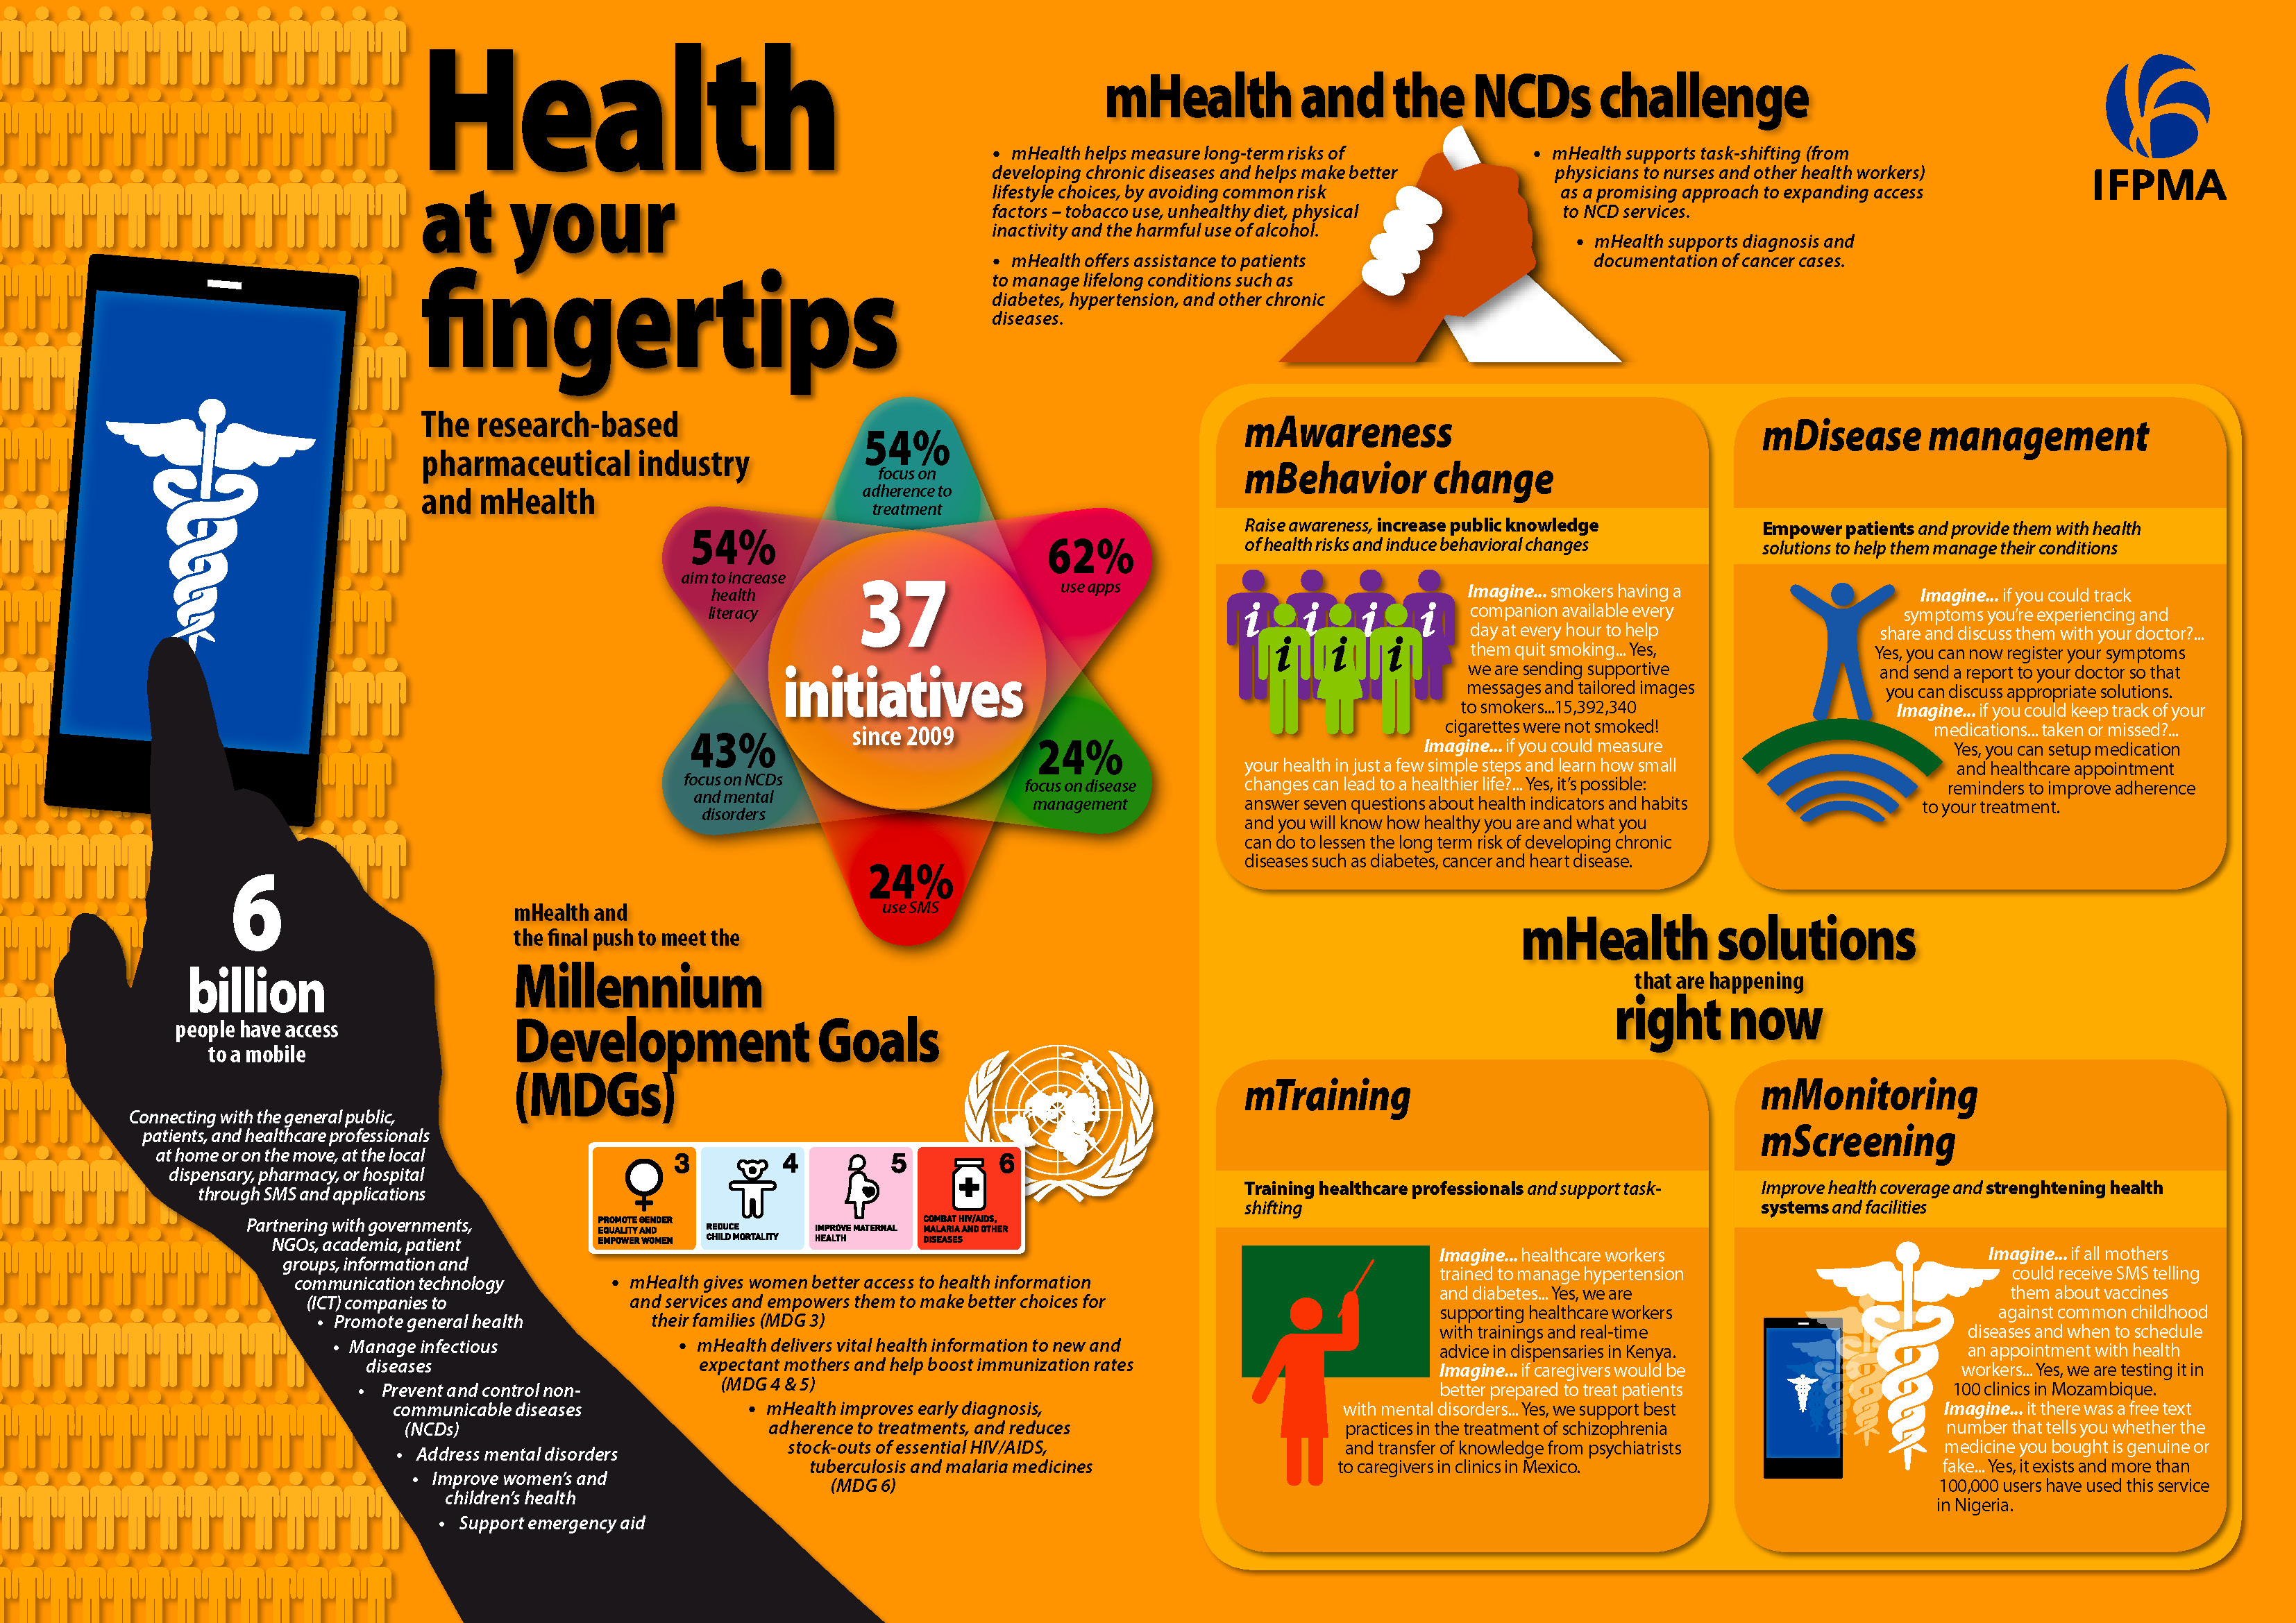 IFPMA_Health_at_your_fingertips_Infographic_A3